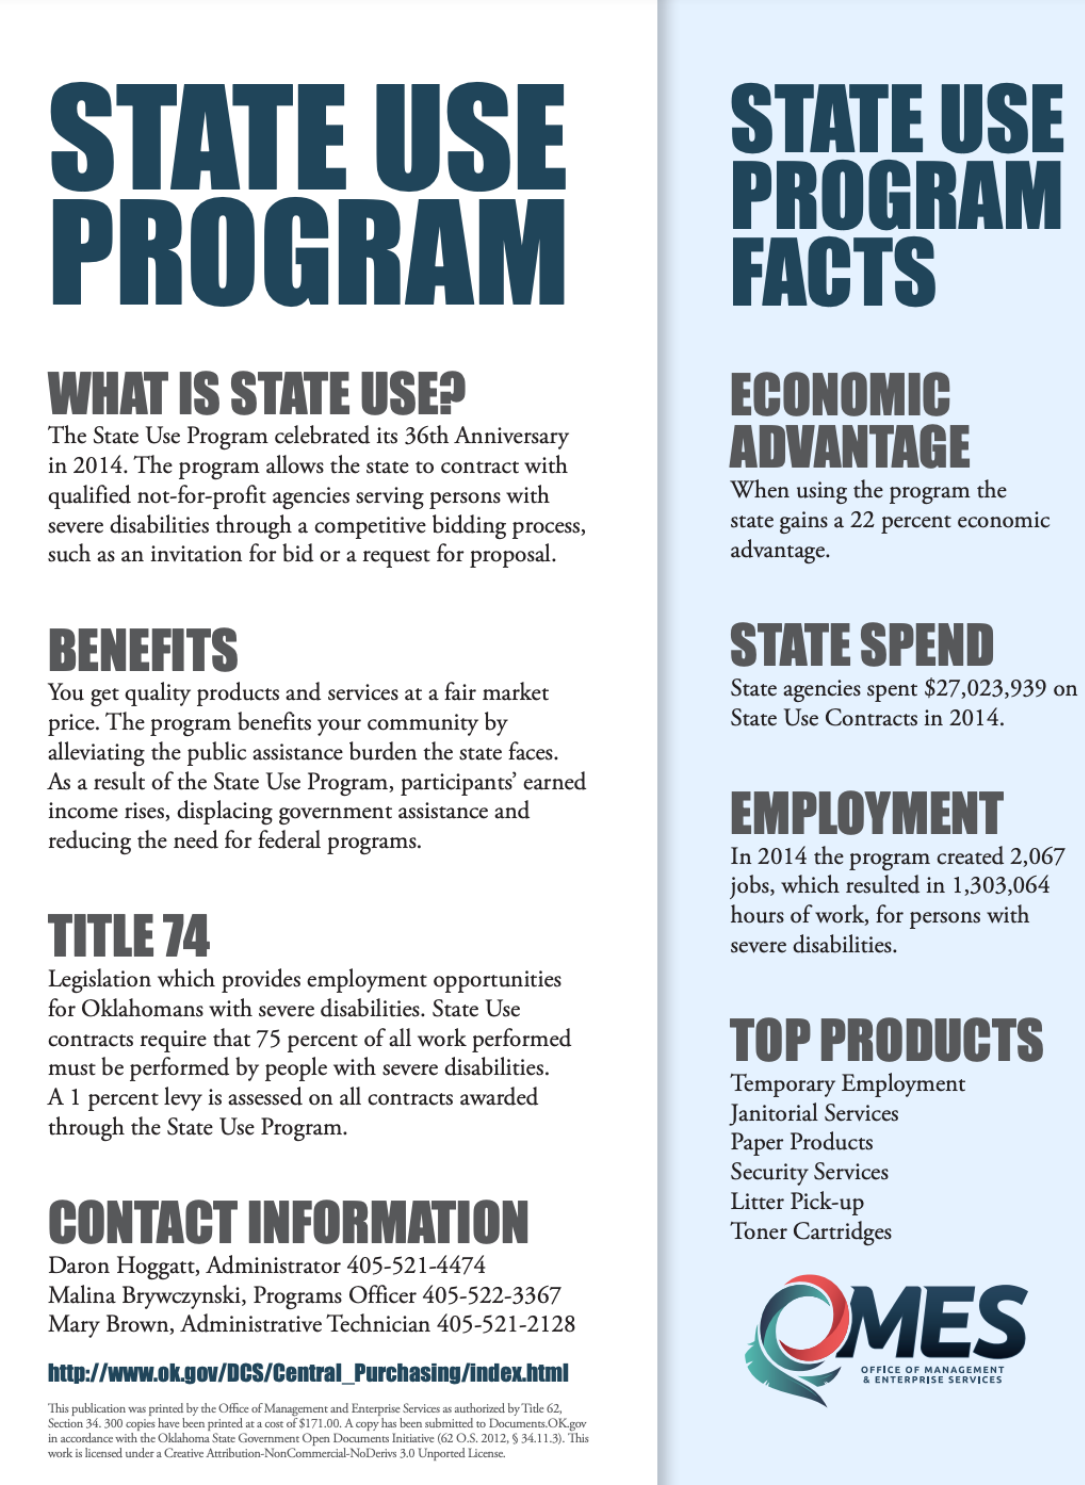 State Use Program Facts